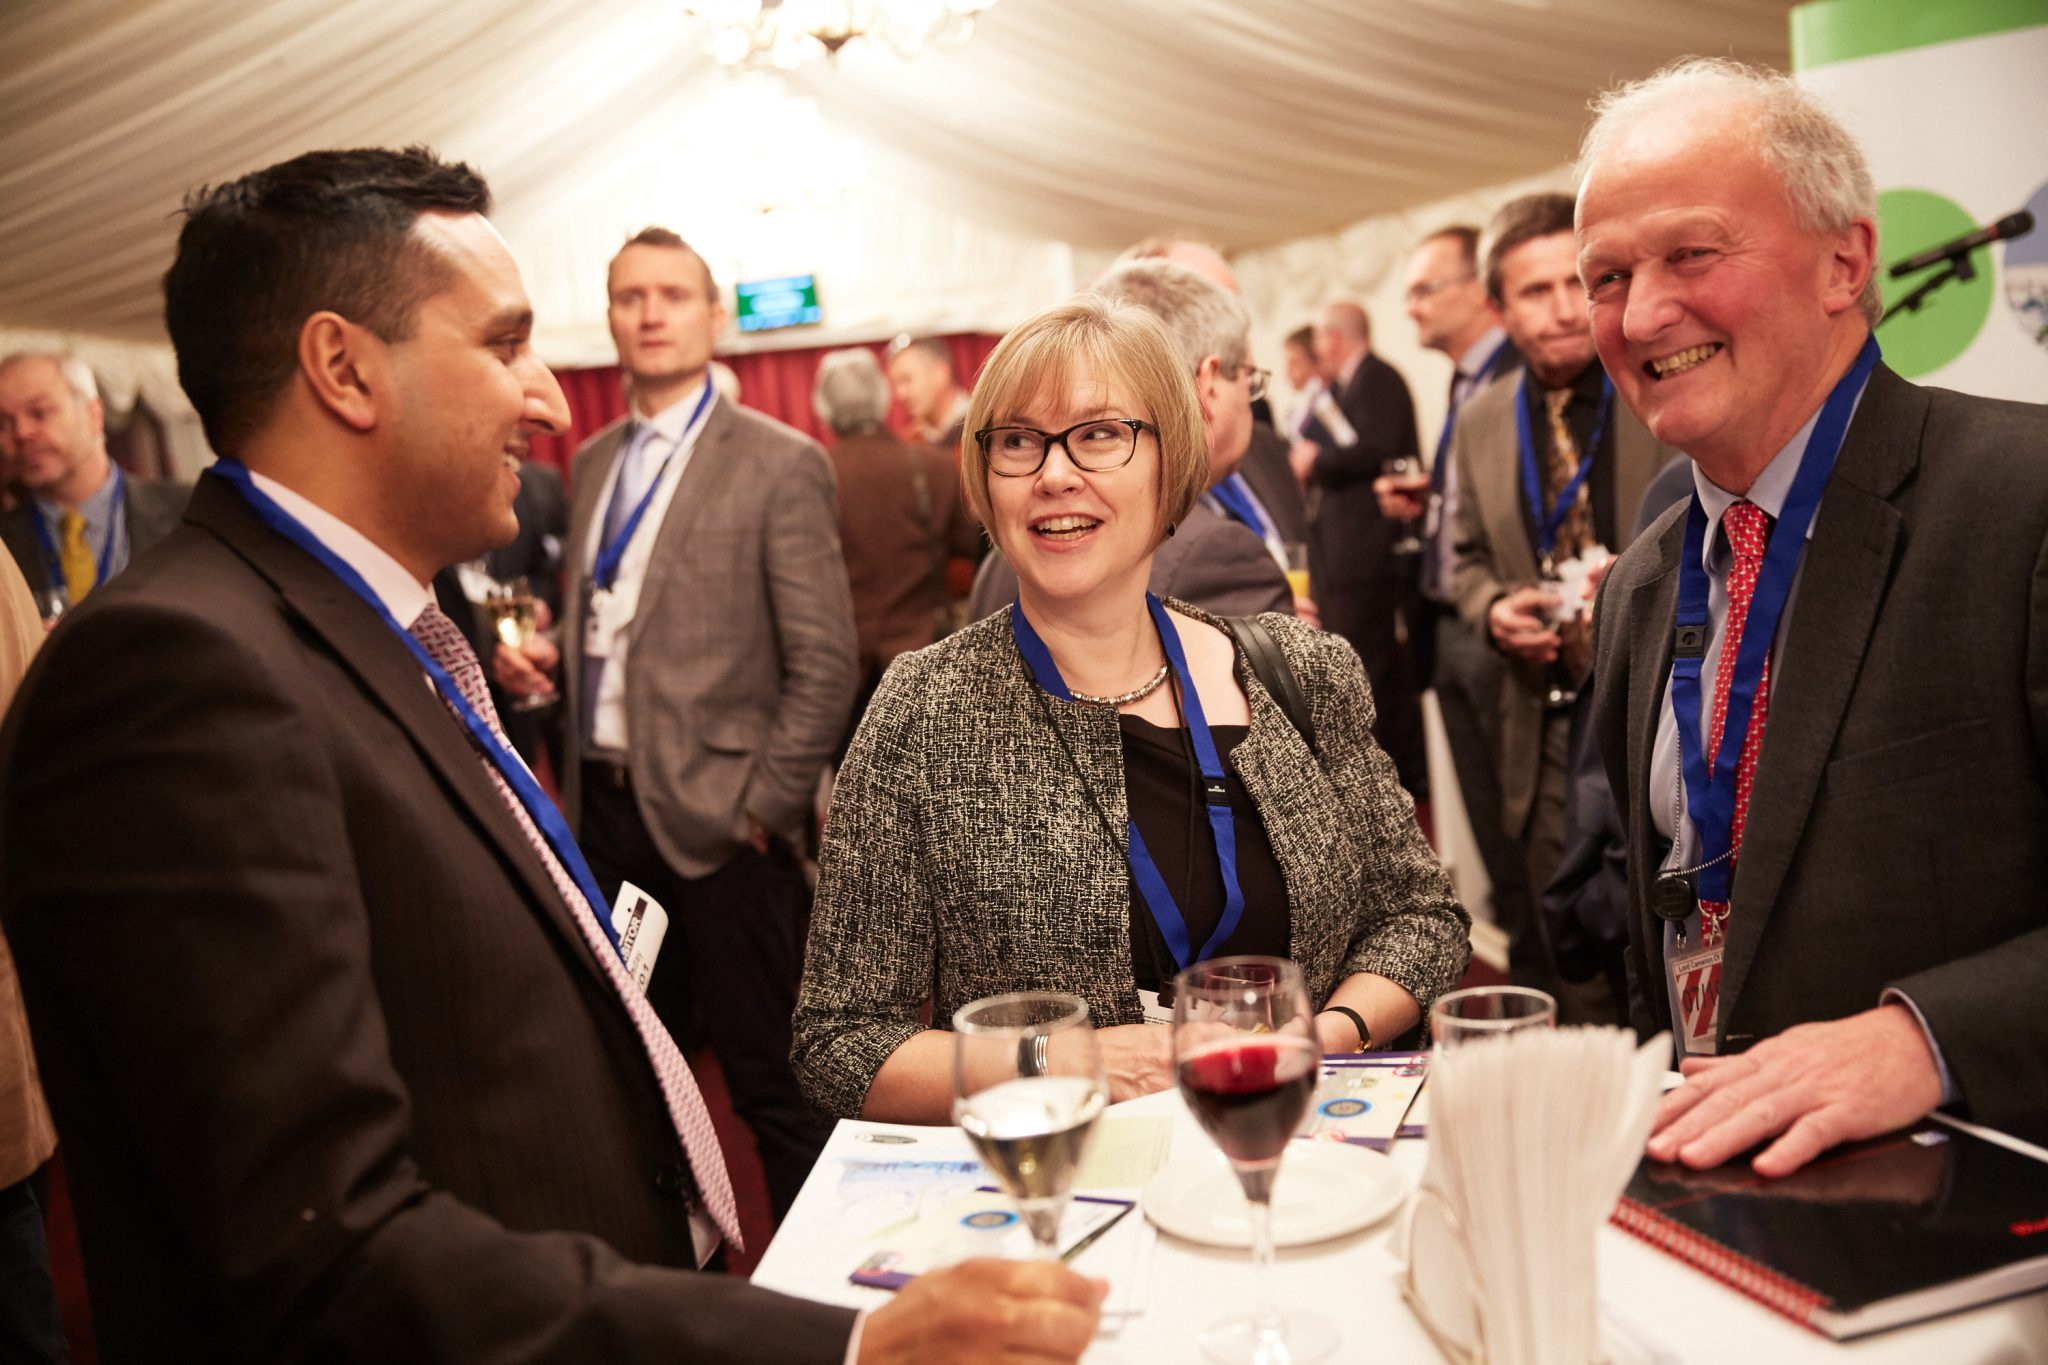 Riaz Bhunnoo, Head of the GFS programme, Melanie Welham, BBSRC Chief Executive, and Lord Cameron of Dillington, Chairman of the GFS Strategy Advisory Board, speaking at the event